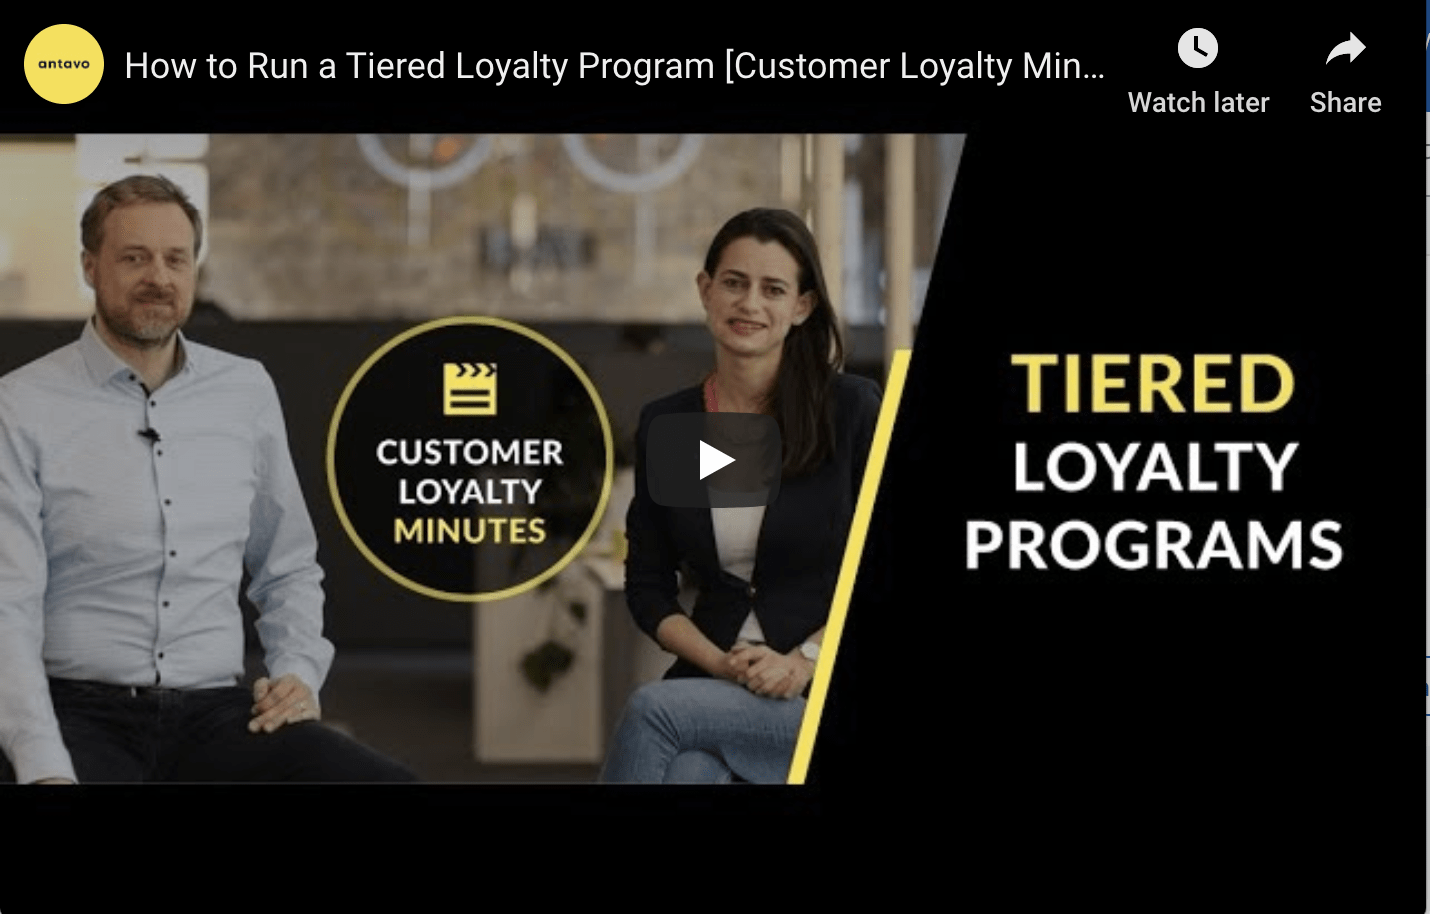 Tiered Loyalty Program